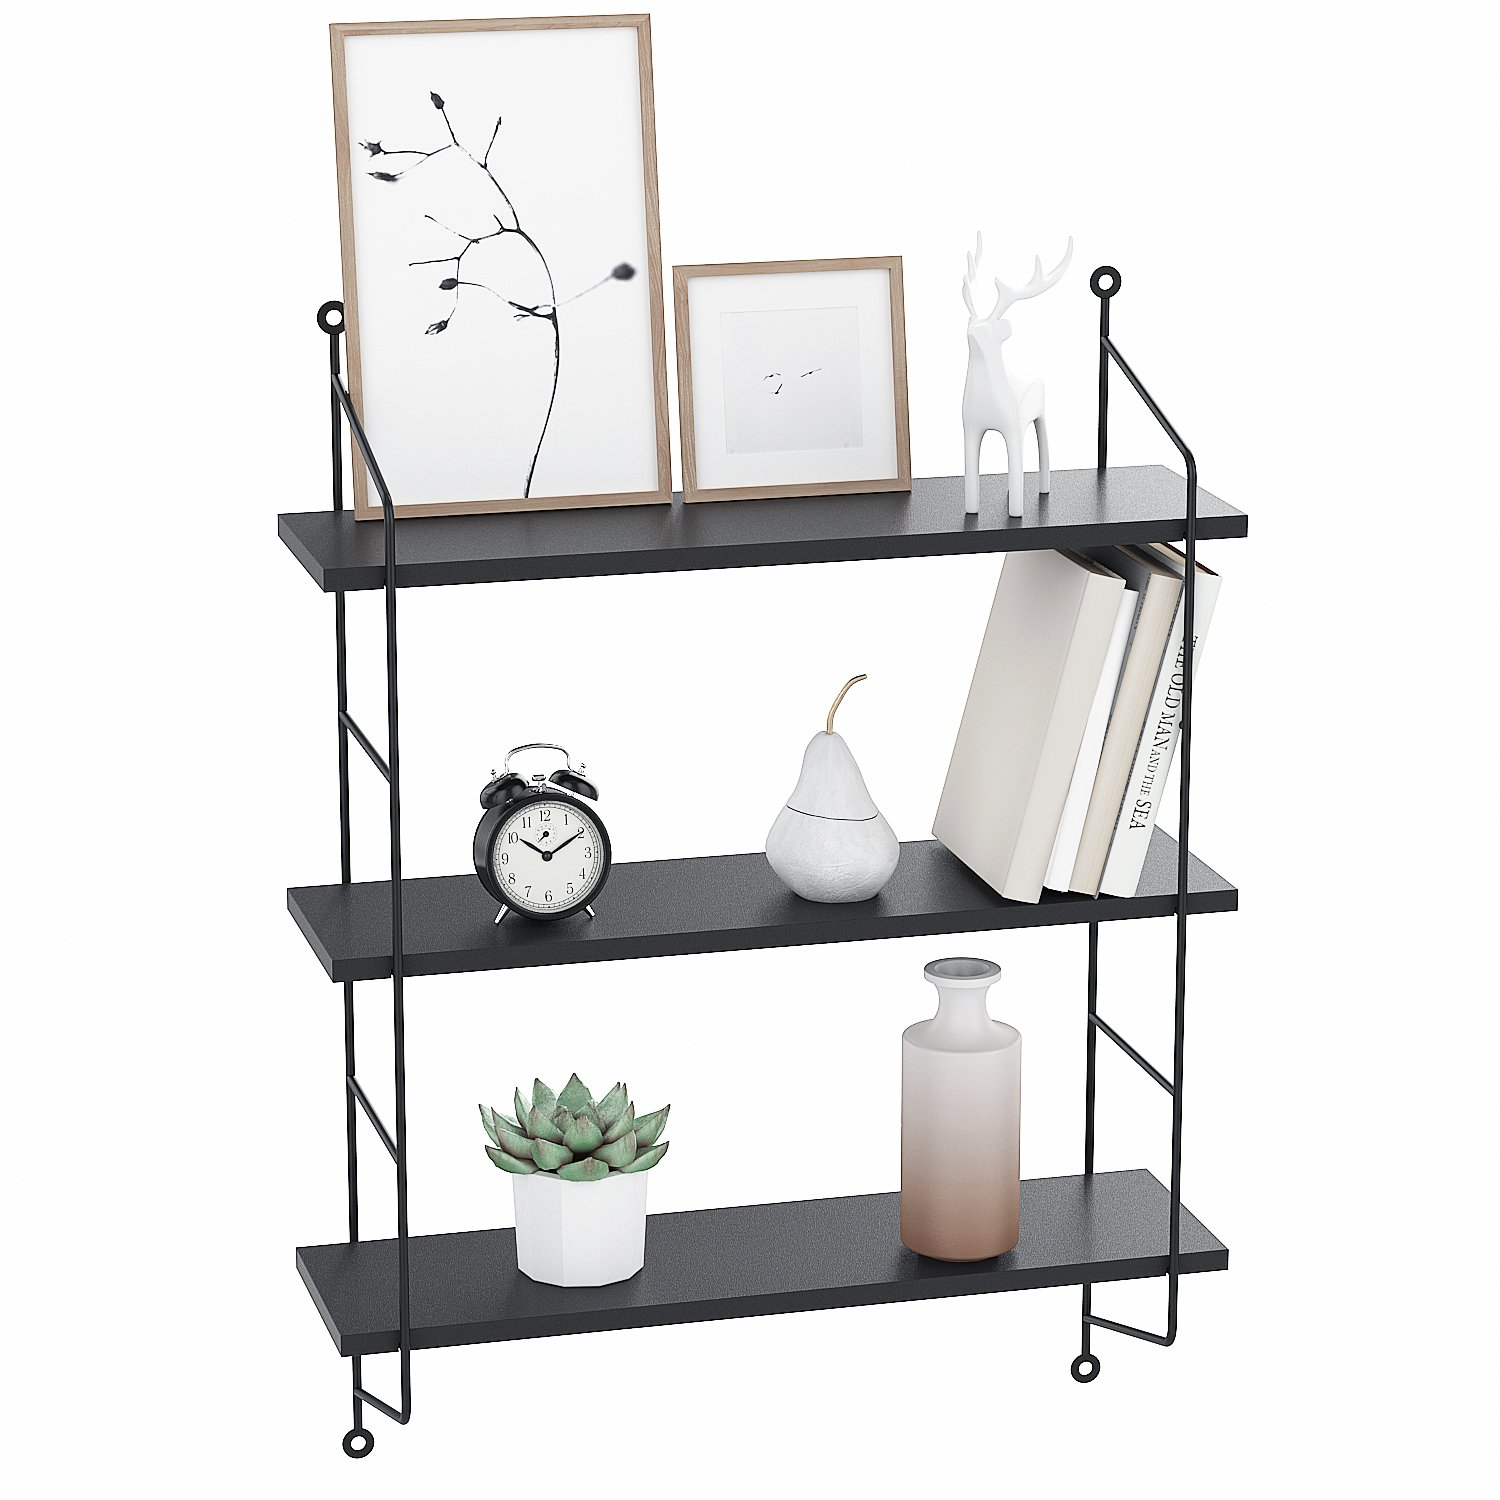 Homdox 3-tier Industrial Floating Shelves Wall Mounted